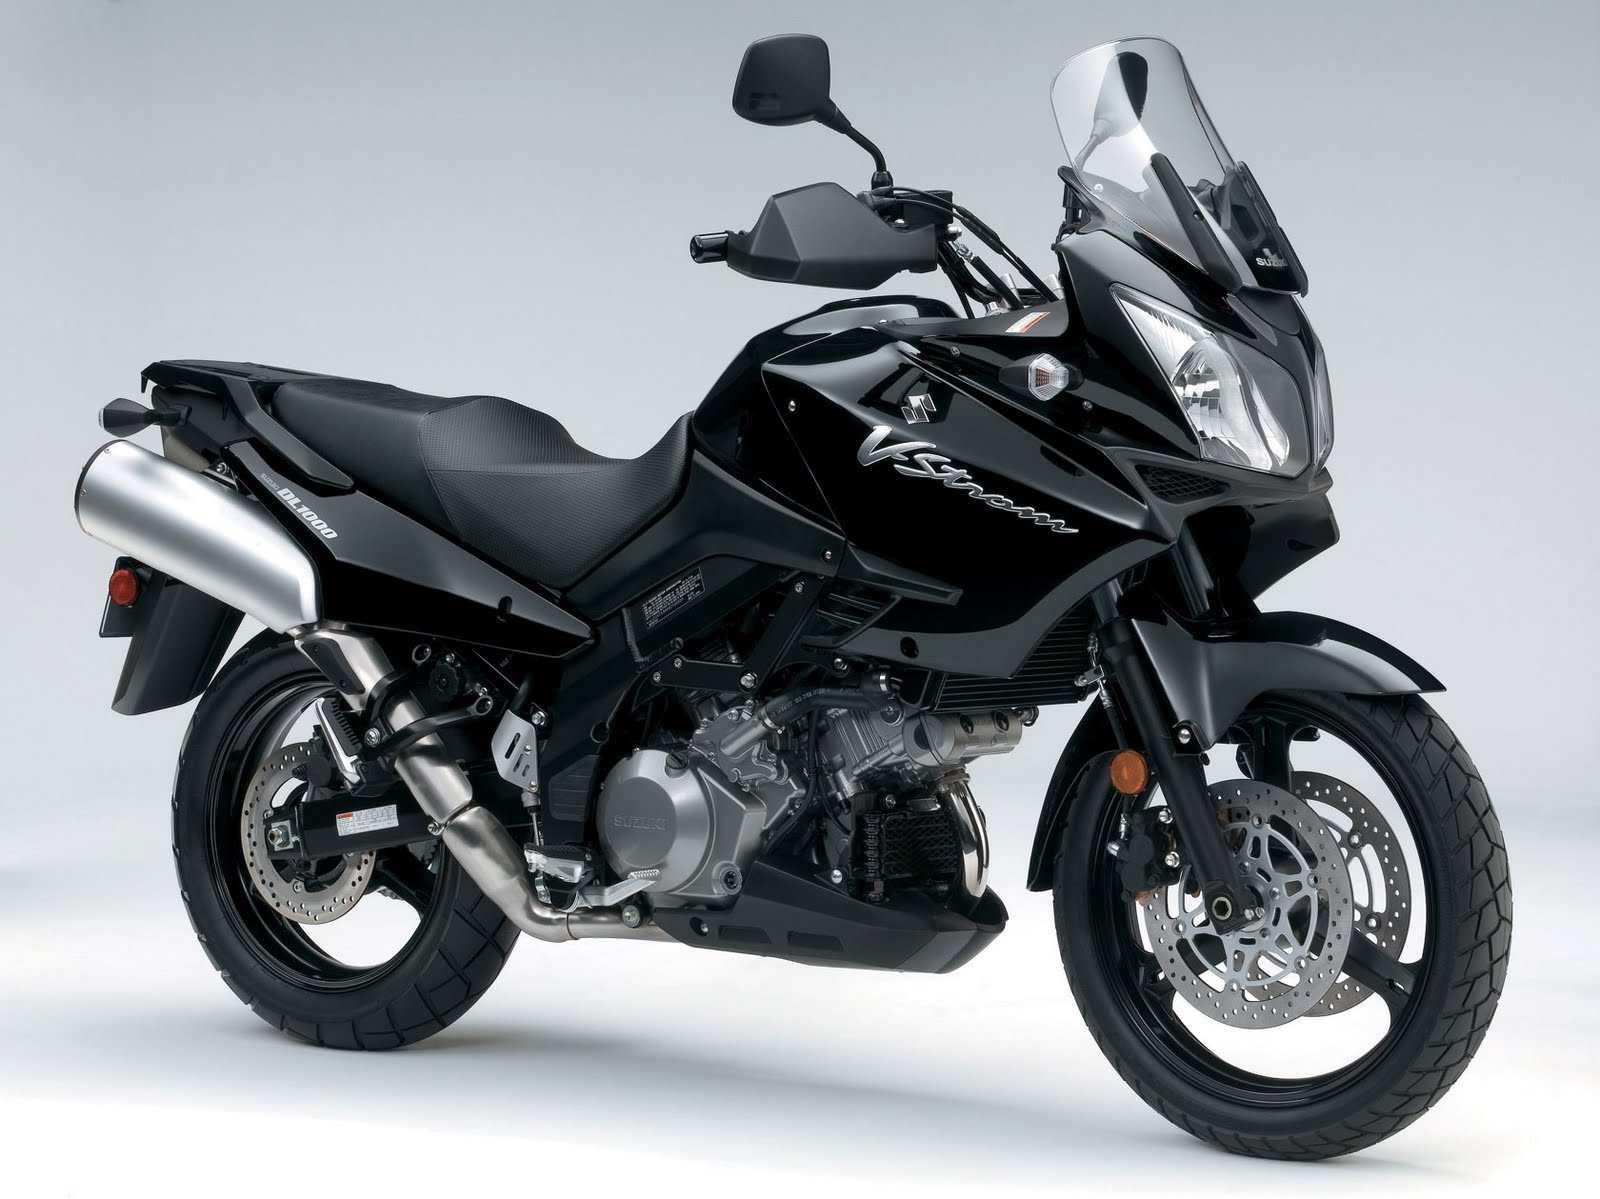 suzuki v strom 1000 review autos weblog. Black Bedroom Furniture Sets. Home Design Ideas